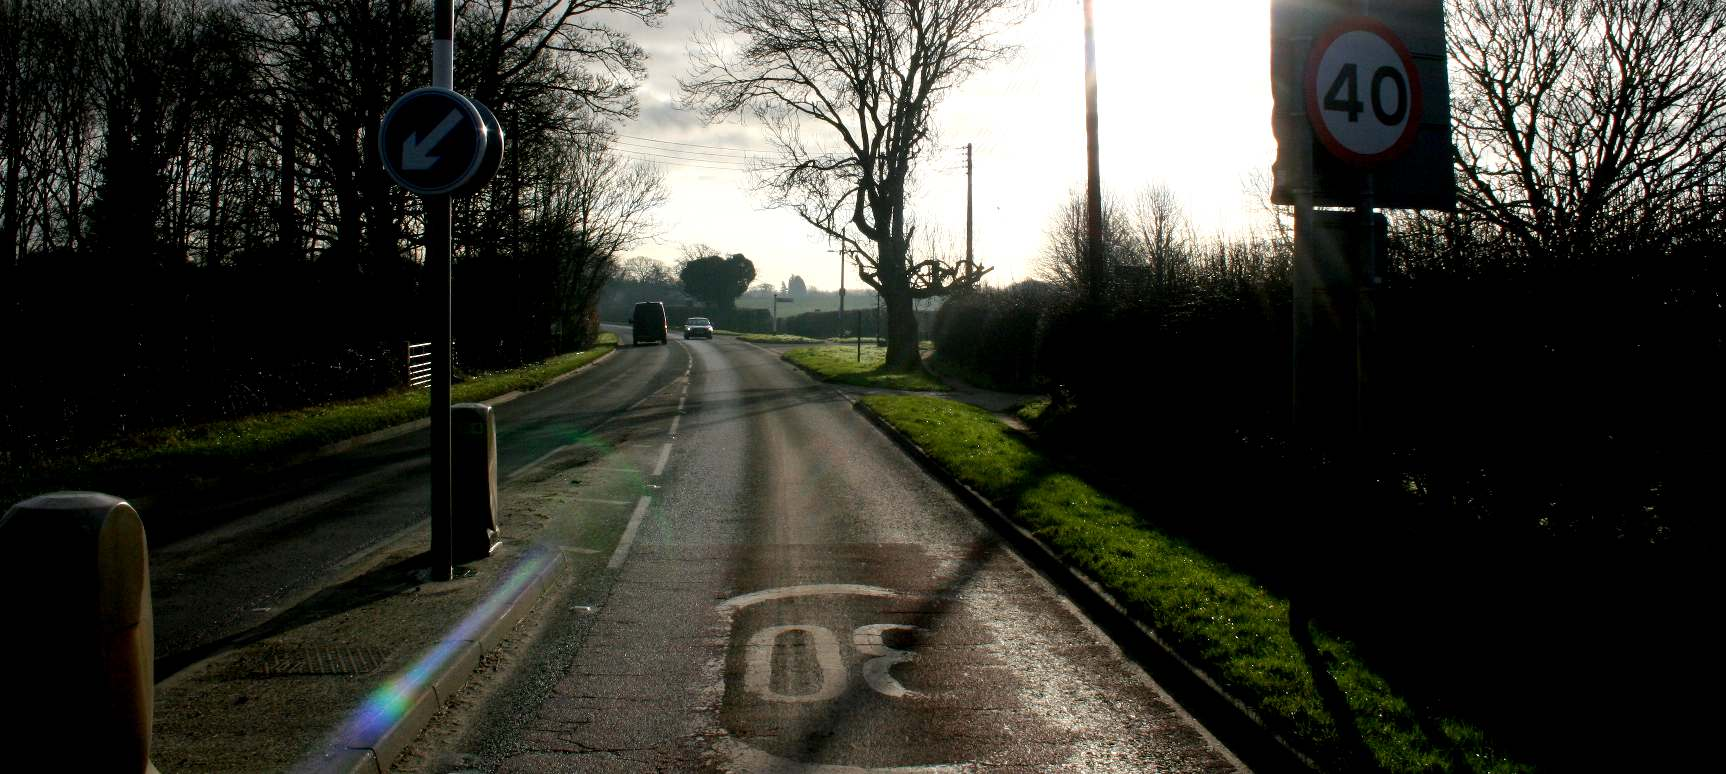 Typical British country road is substandard for modern electric vehicles